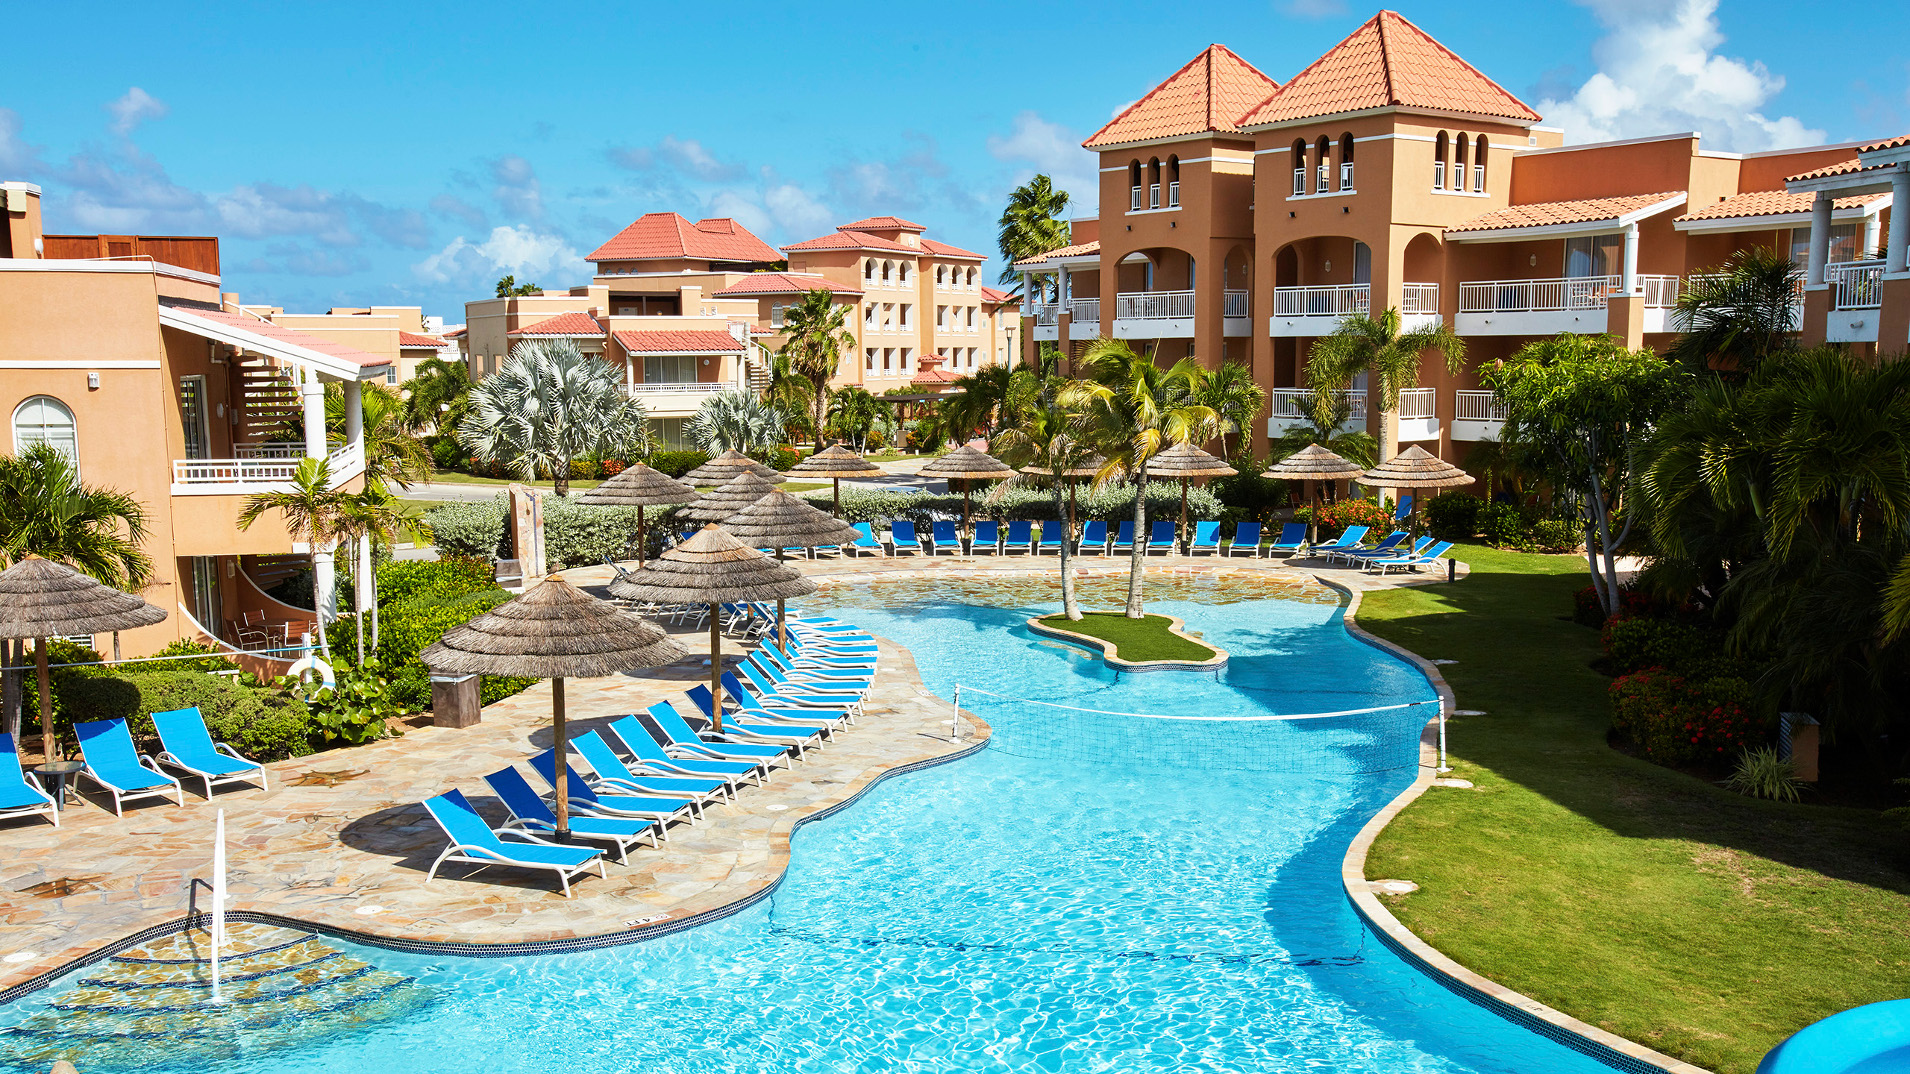 Divi Village Golf & Beach Resort, Aruba